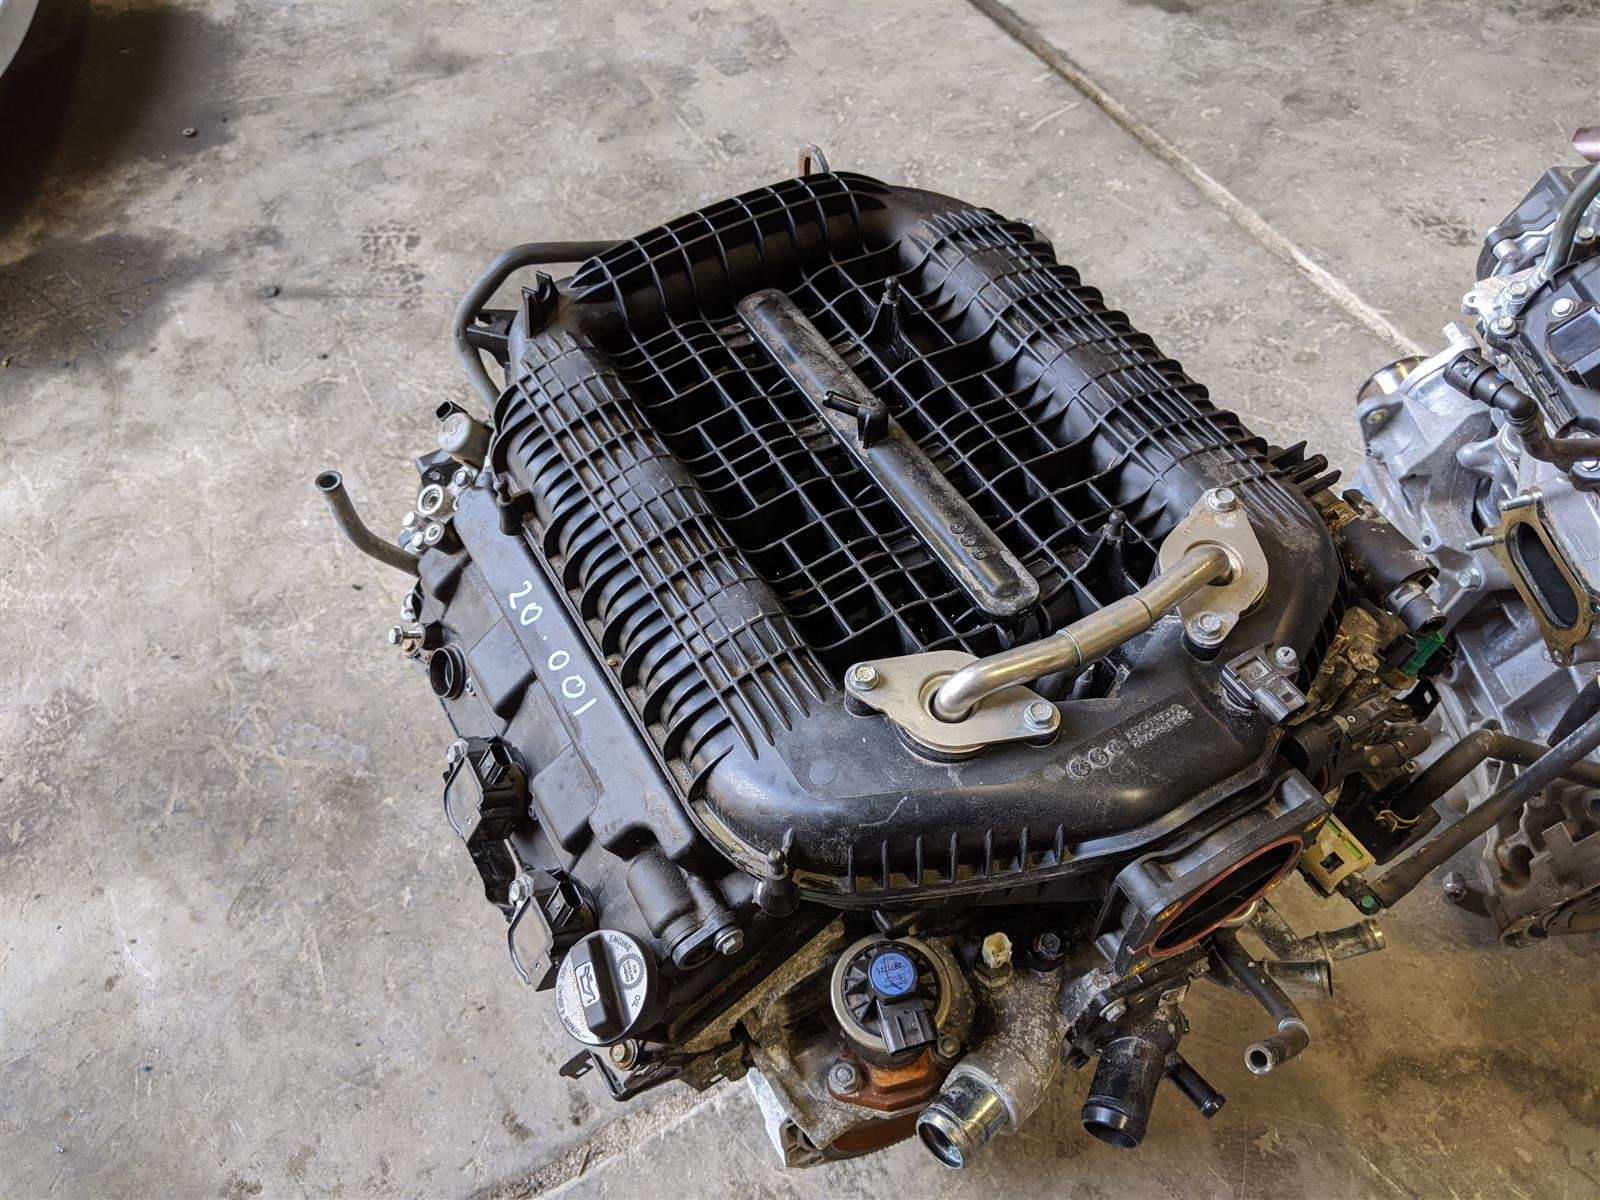 2018 Honda Odyssey Engine Longblock 51,000 Miles 9speed Replacement